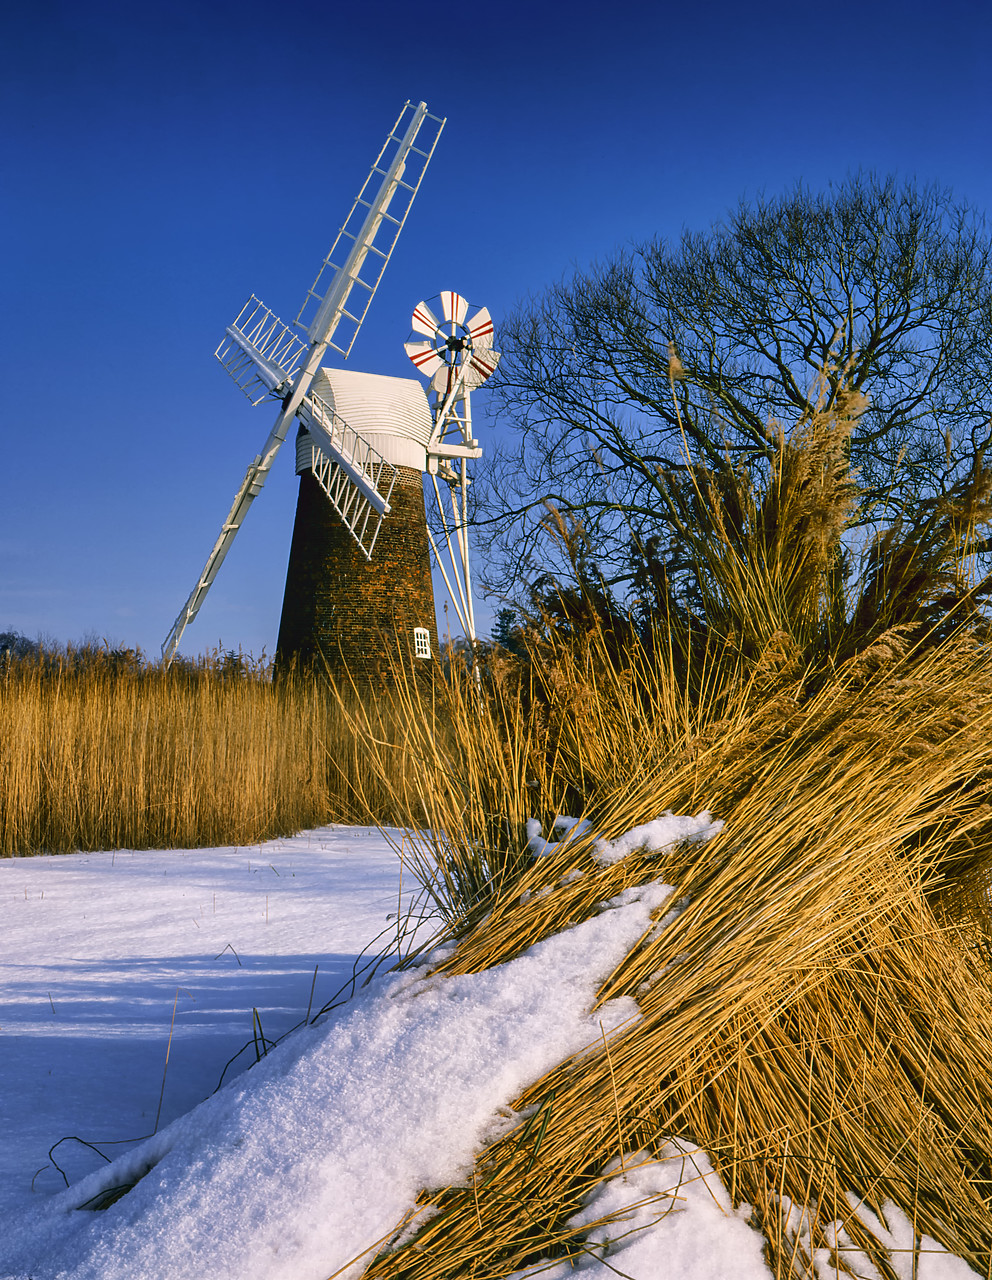 #400141-1 - Turf Fen Mill in Winter, Norfolk Broads National Park, Norfolk, England